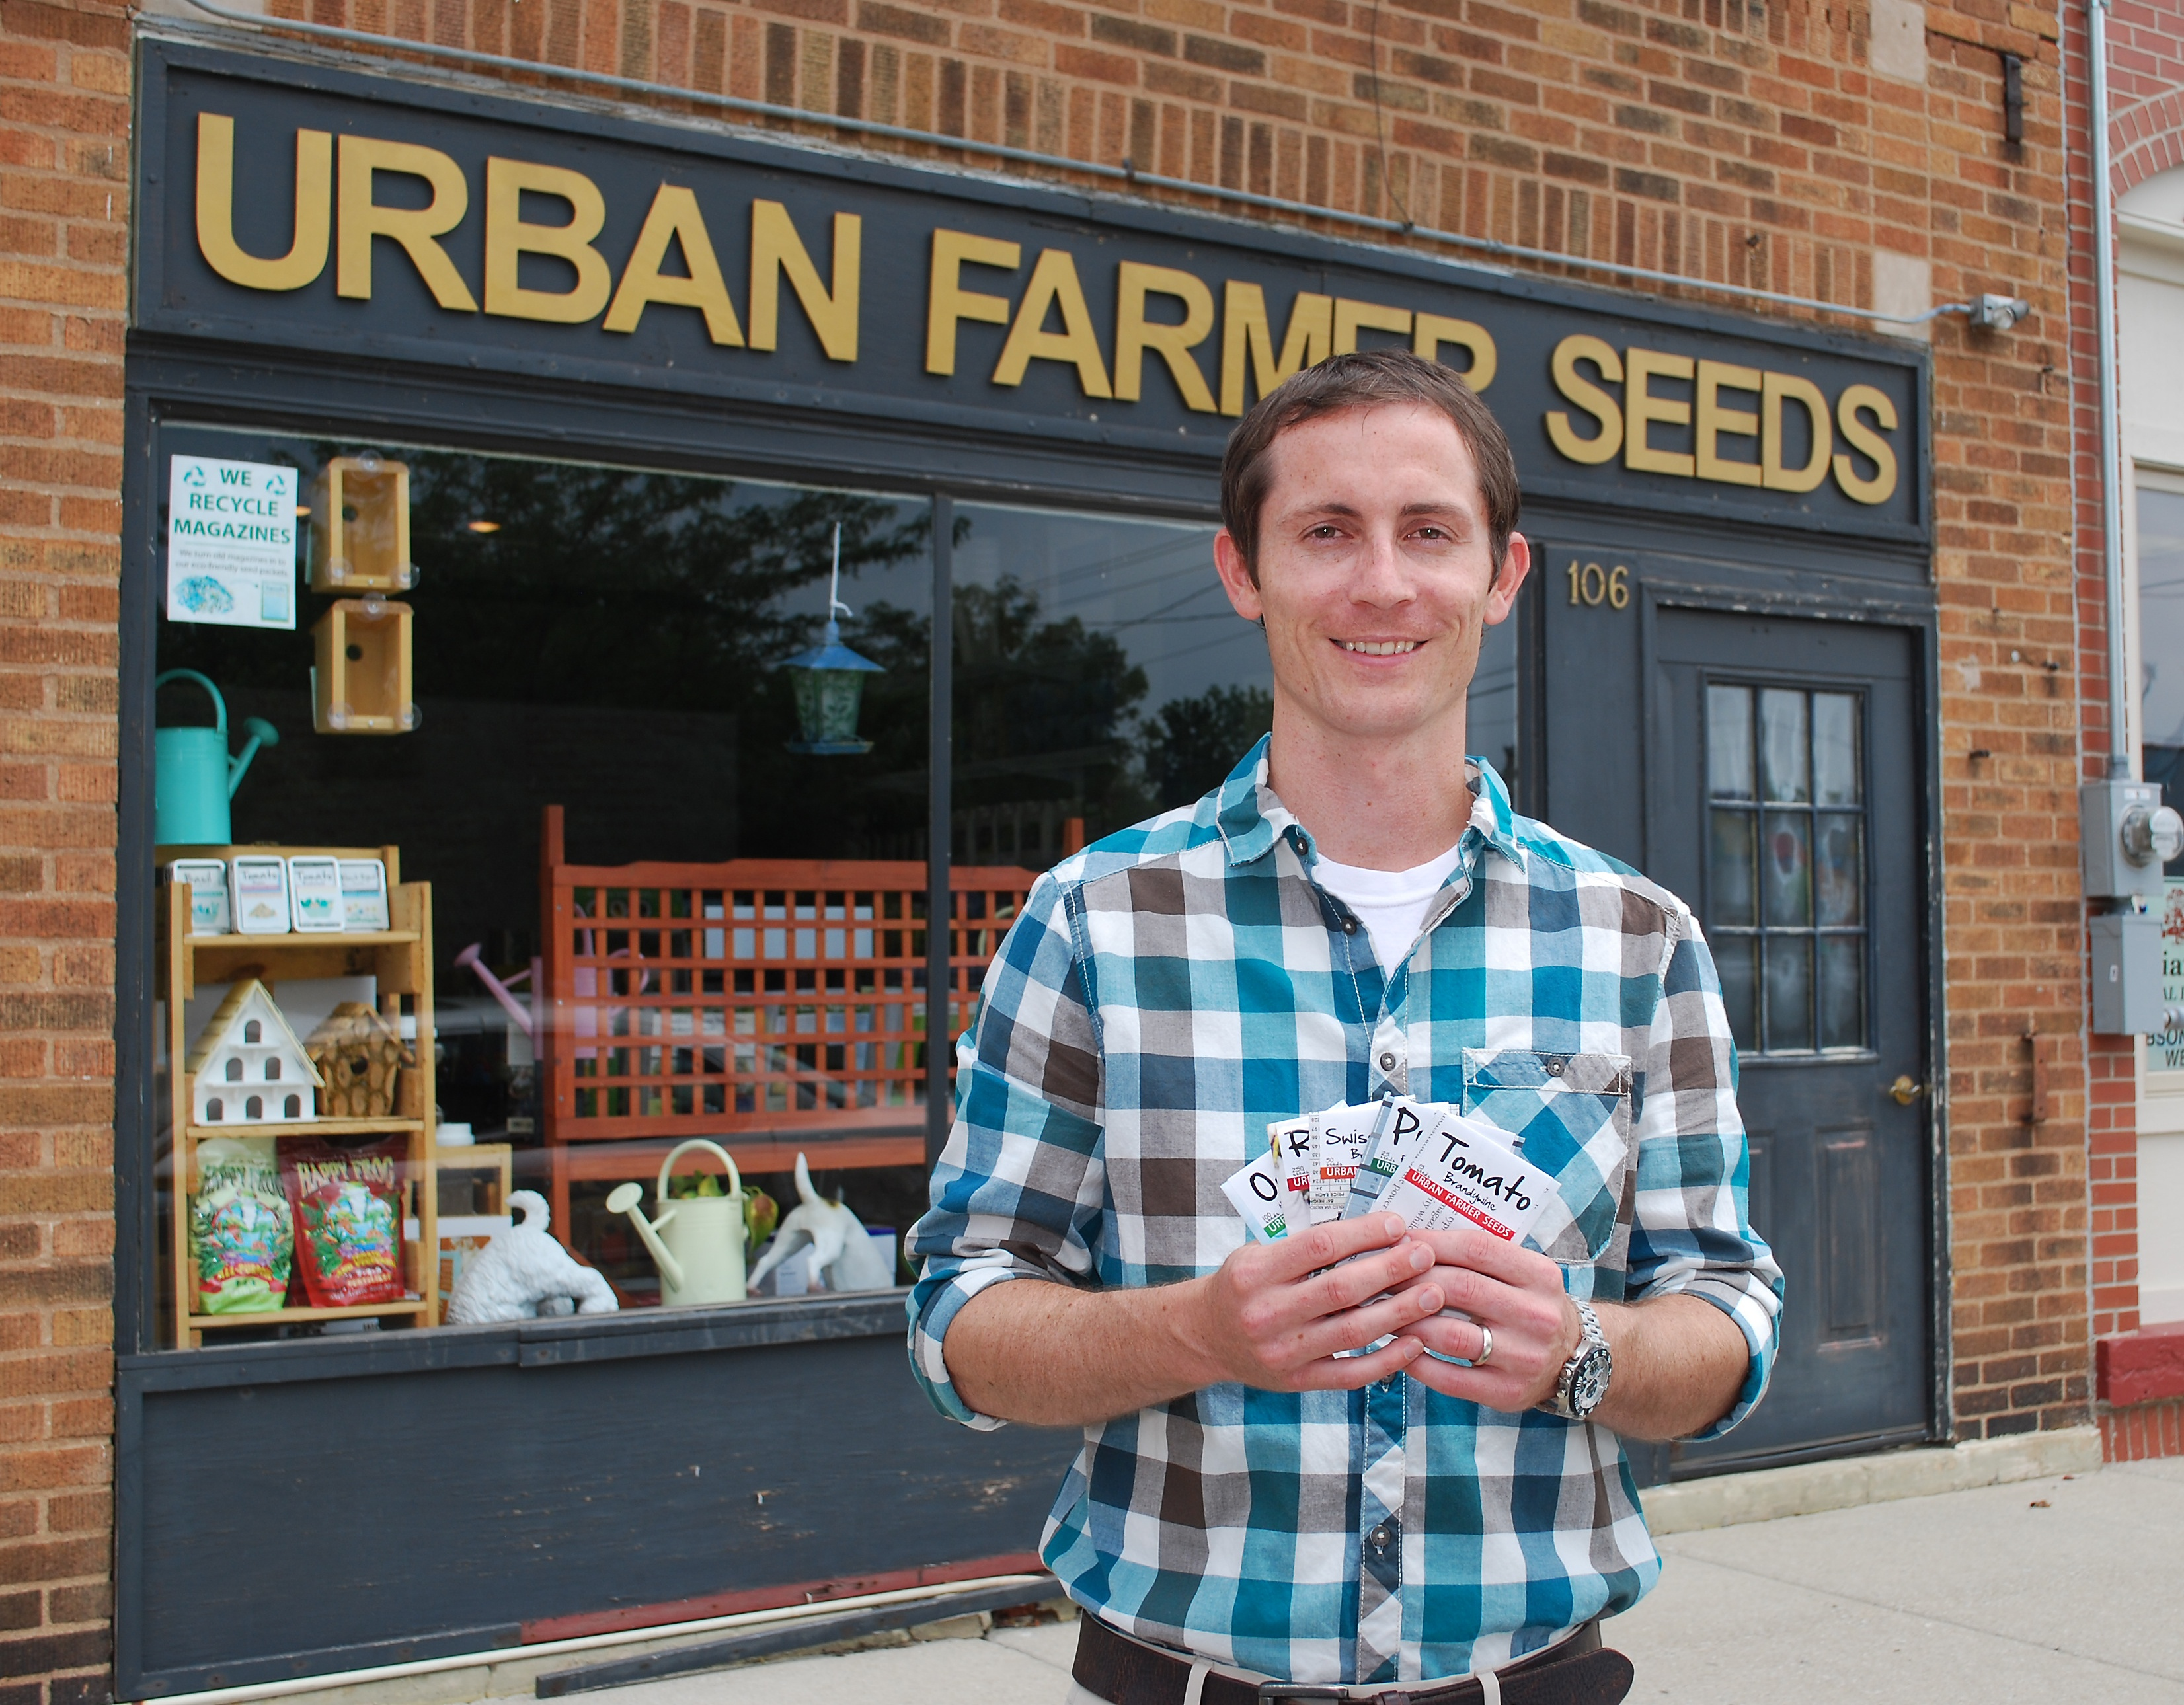 Noah Herron used recycled magazines to start his gardening business, Urban Farmer Seeds. (Photos by Robert Herrington)